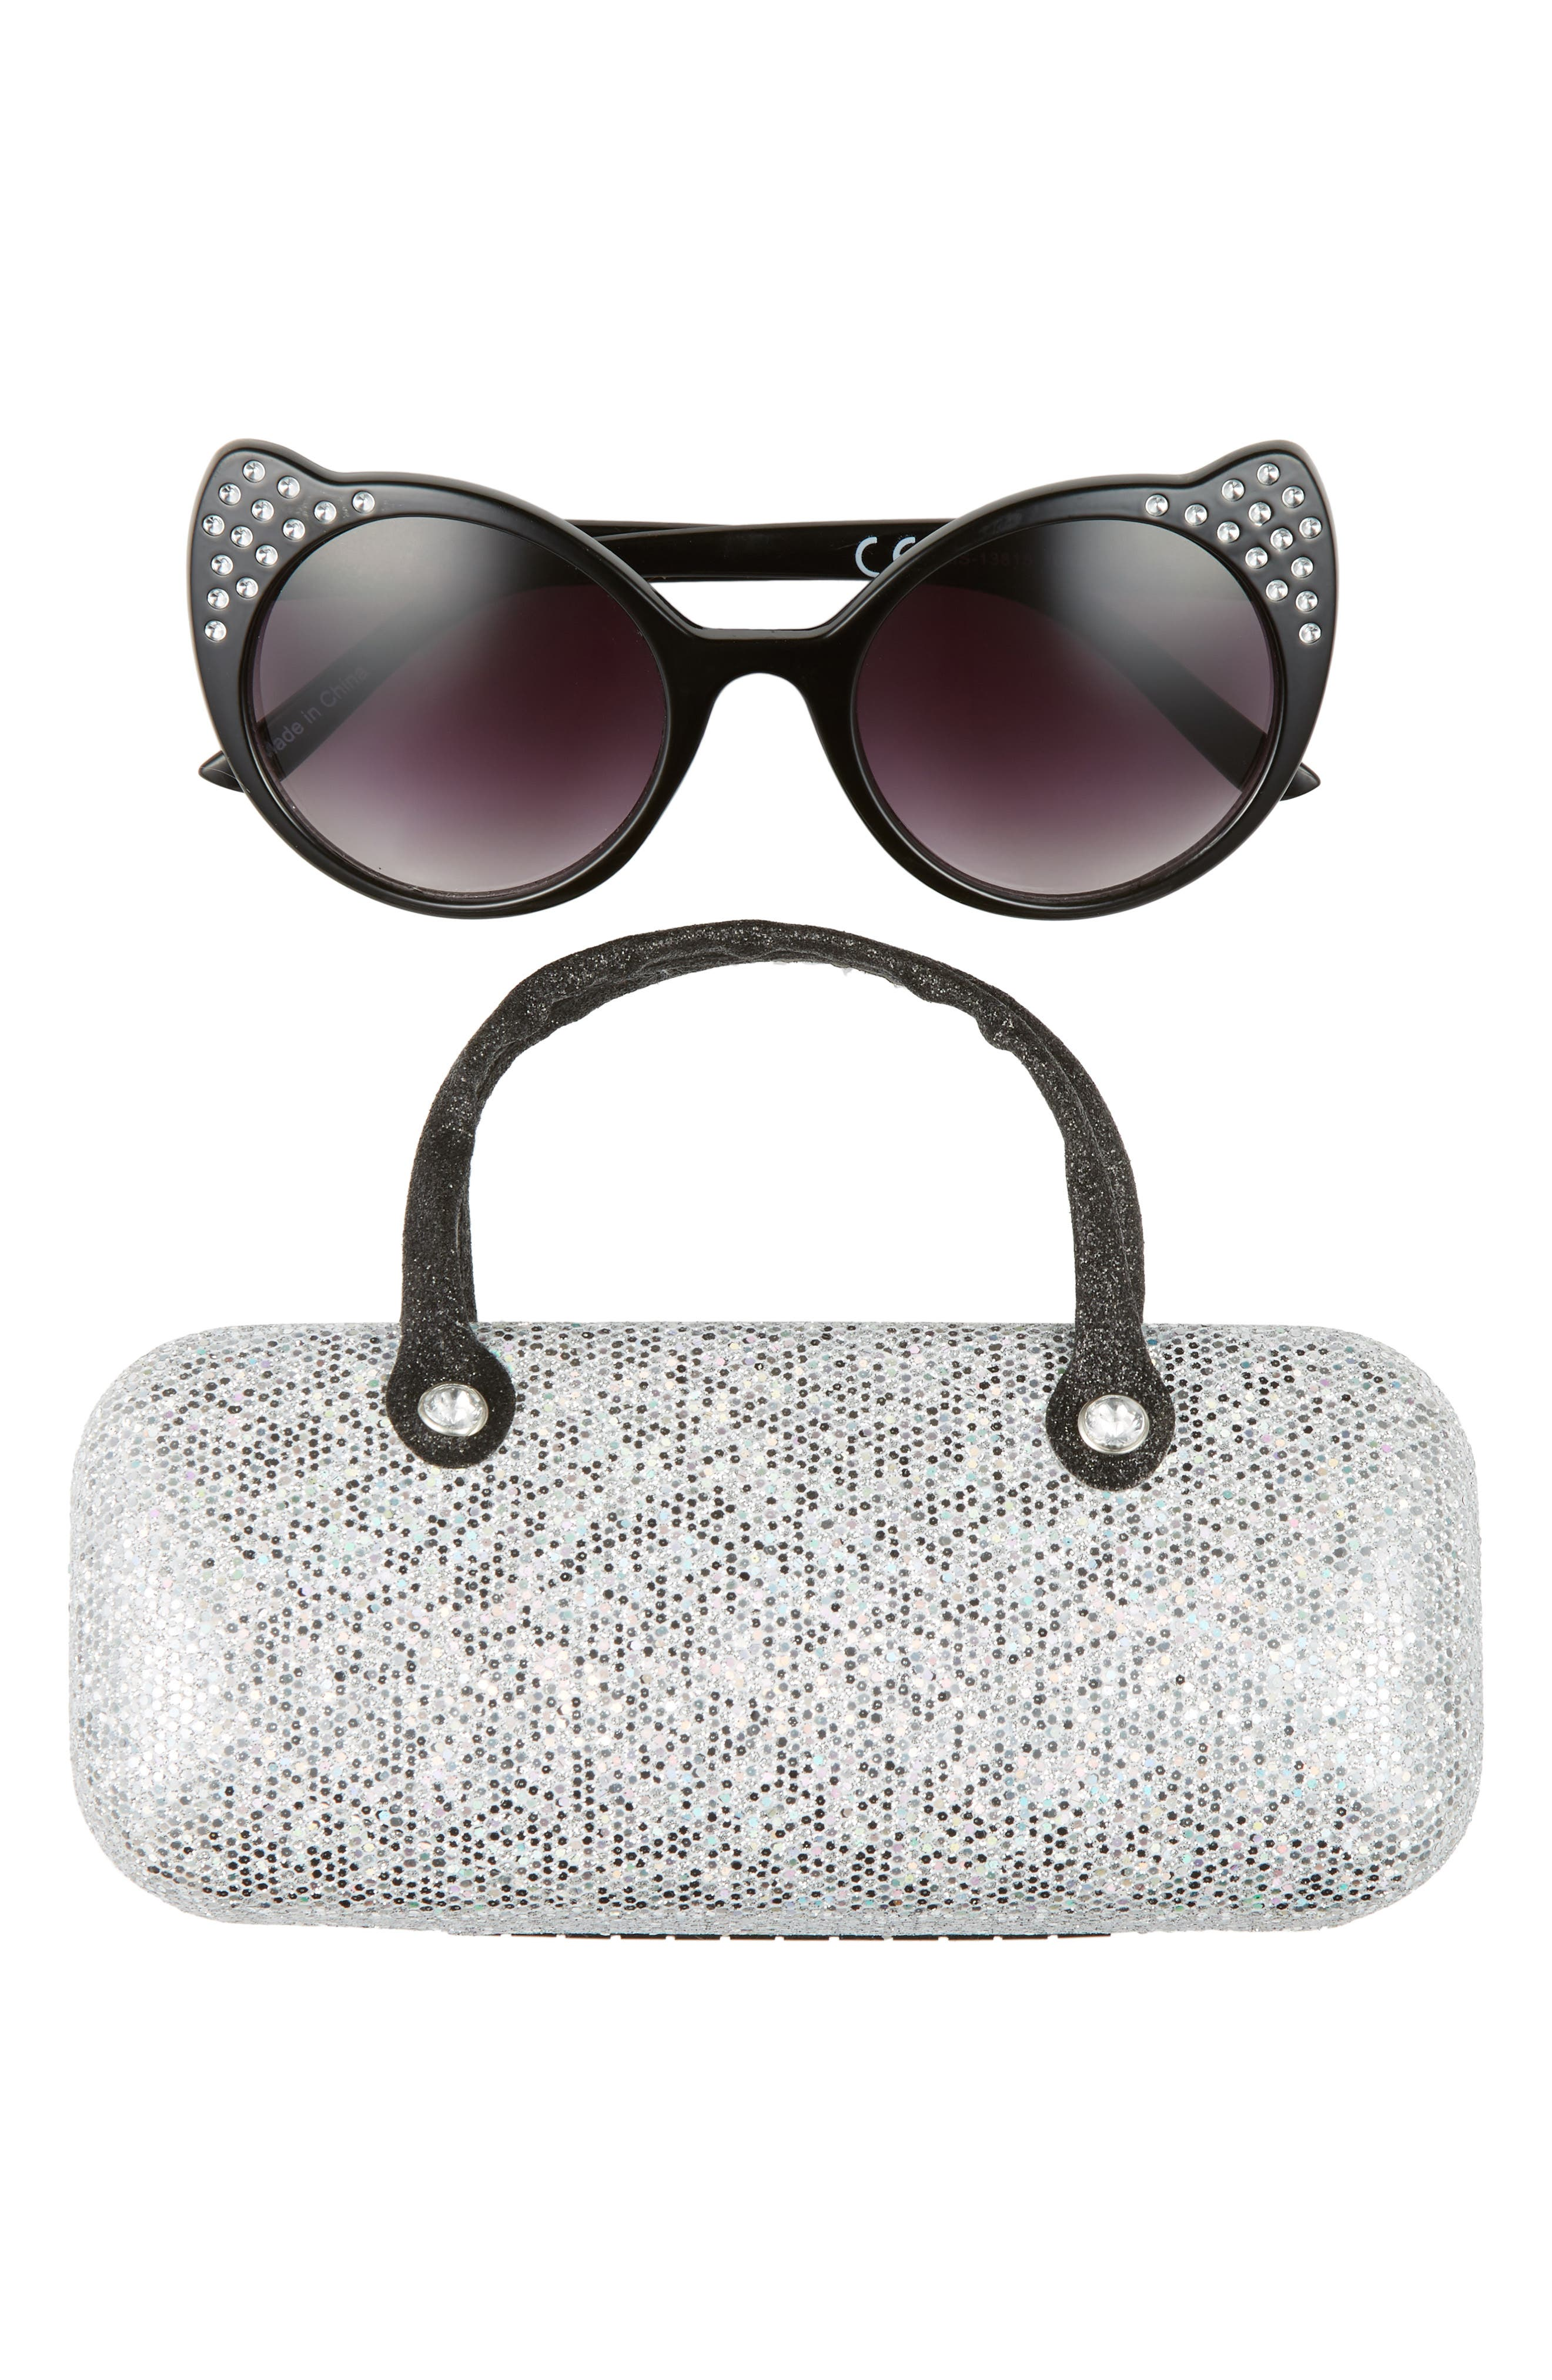 481d29609c Girls Capelli New York 51Mm Cat Eye Sunglasses Glitter Case Set